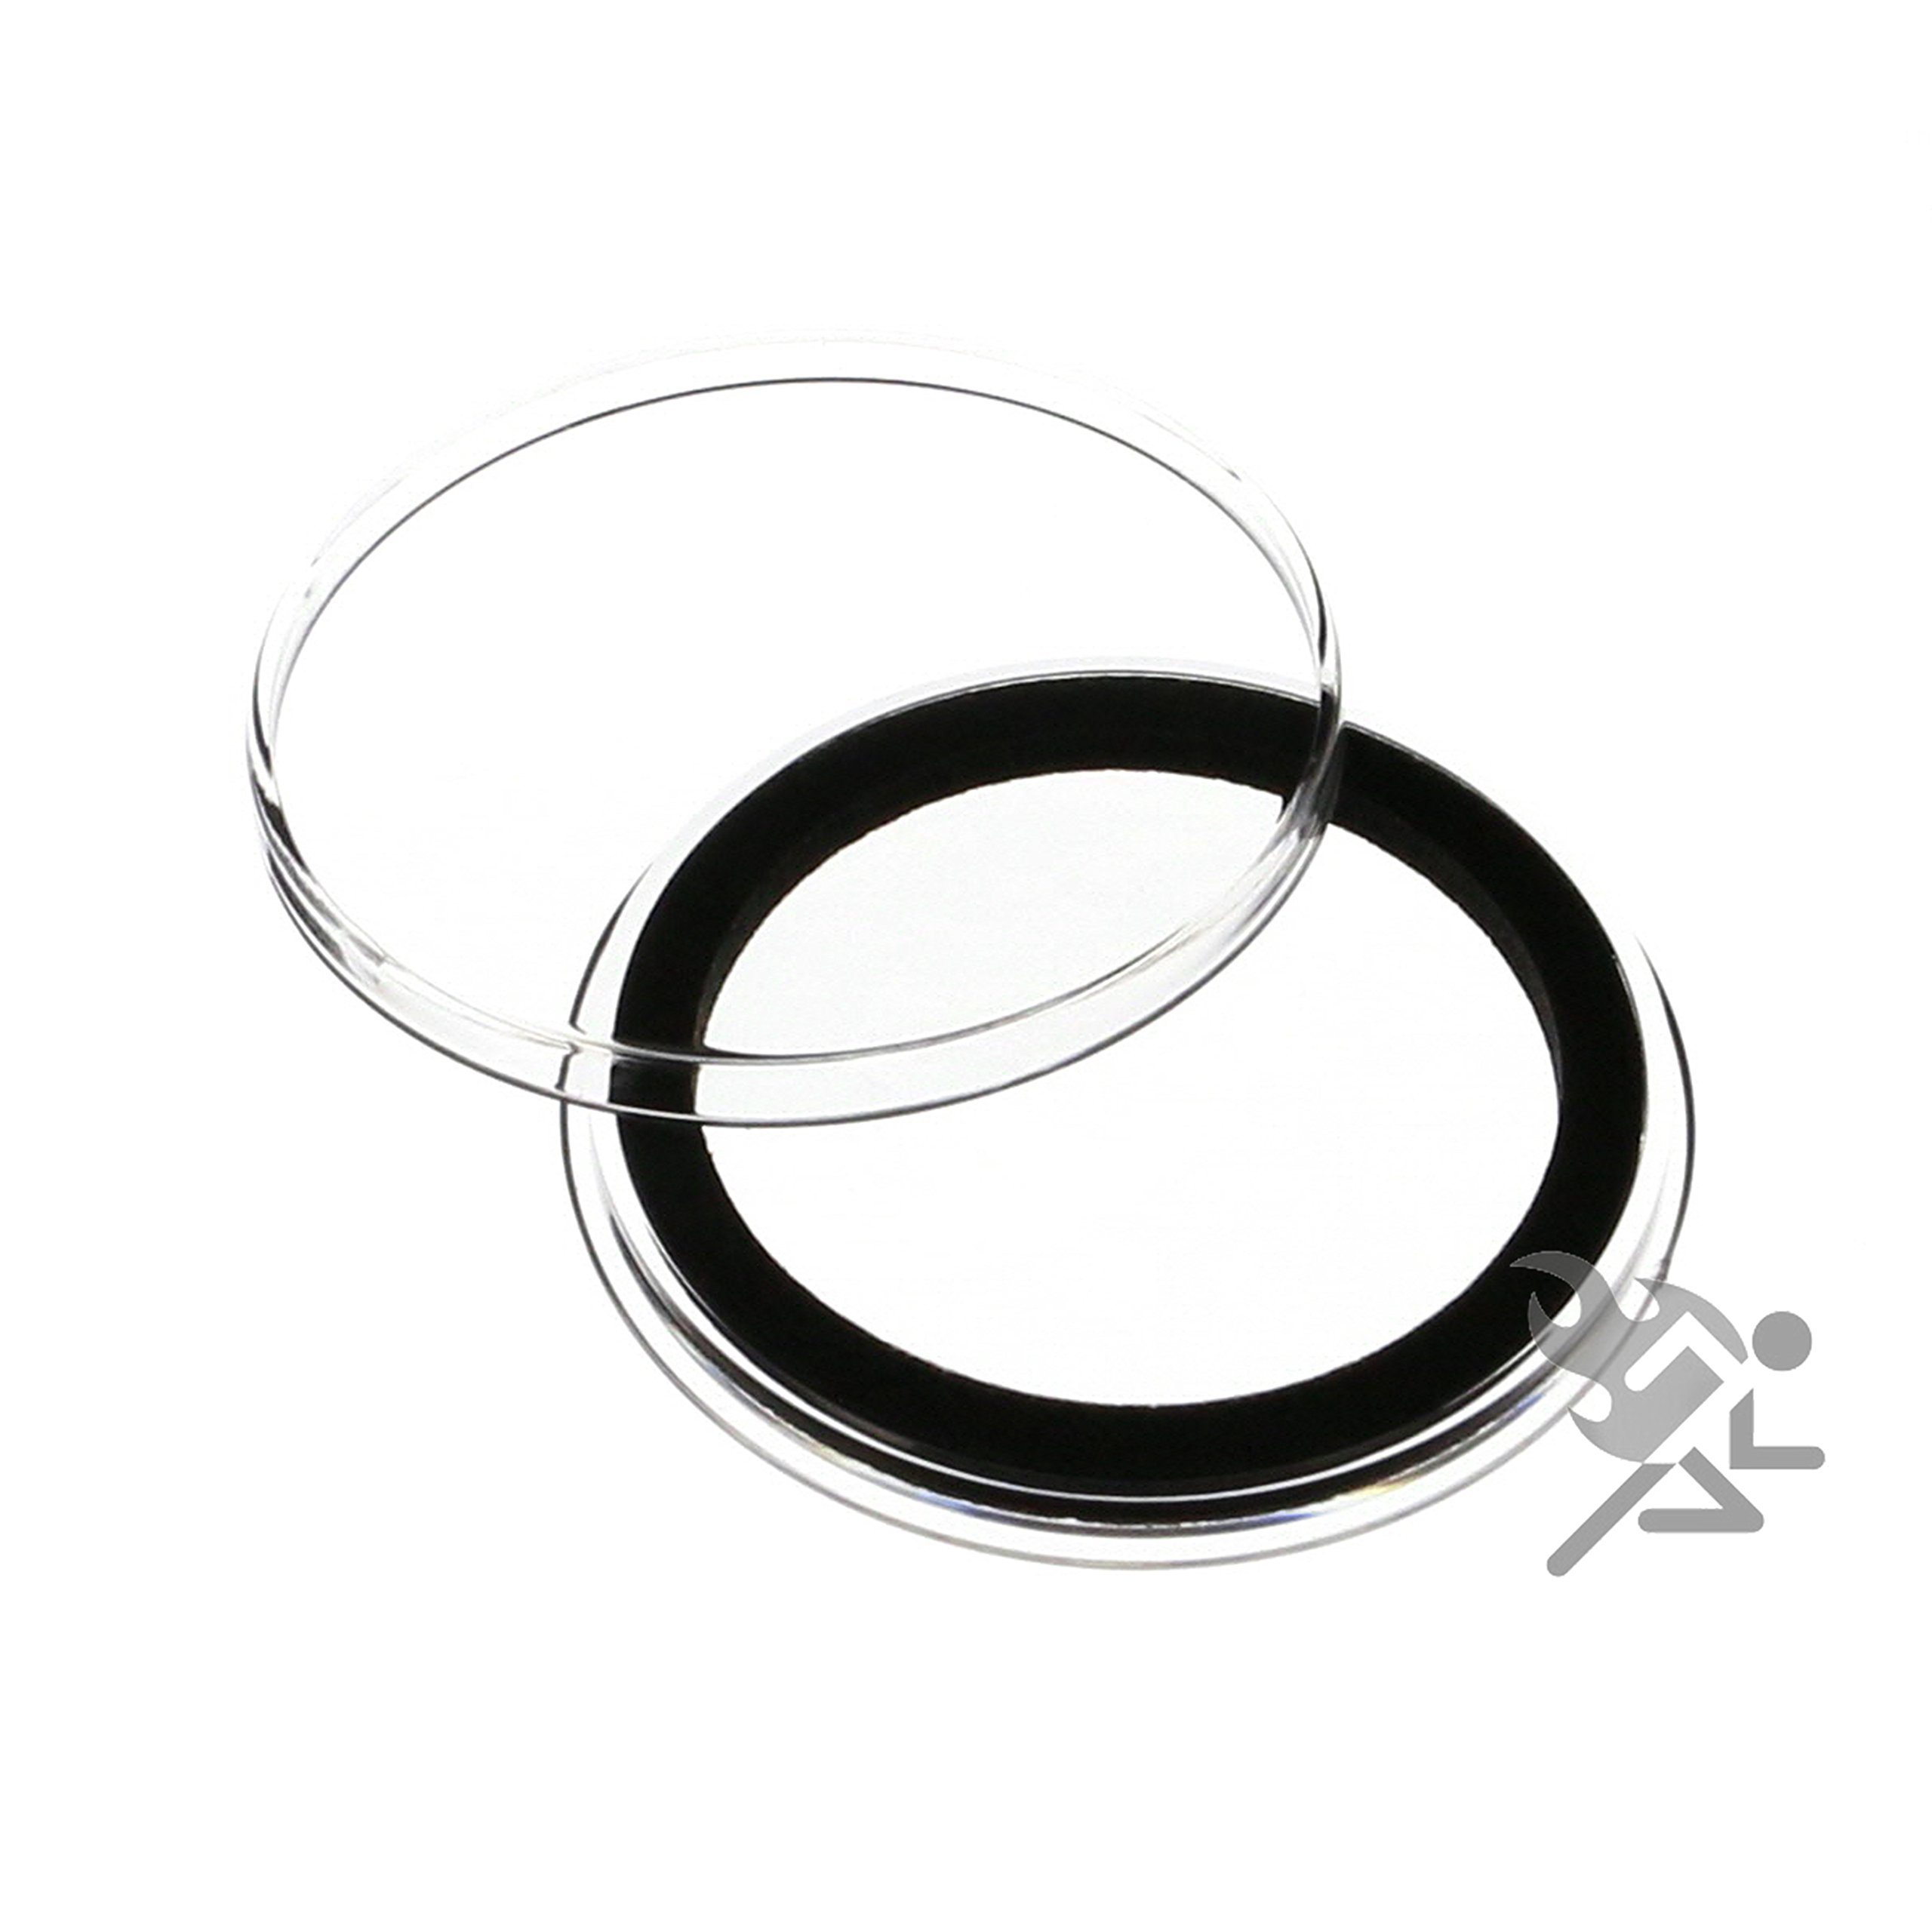 (20) Air-tite 39mm Black Ring Coin Holder Capsules for 1oz Silver & Copper Rounds Casino Chips